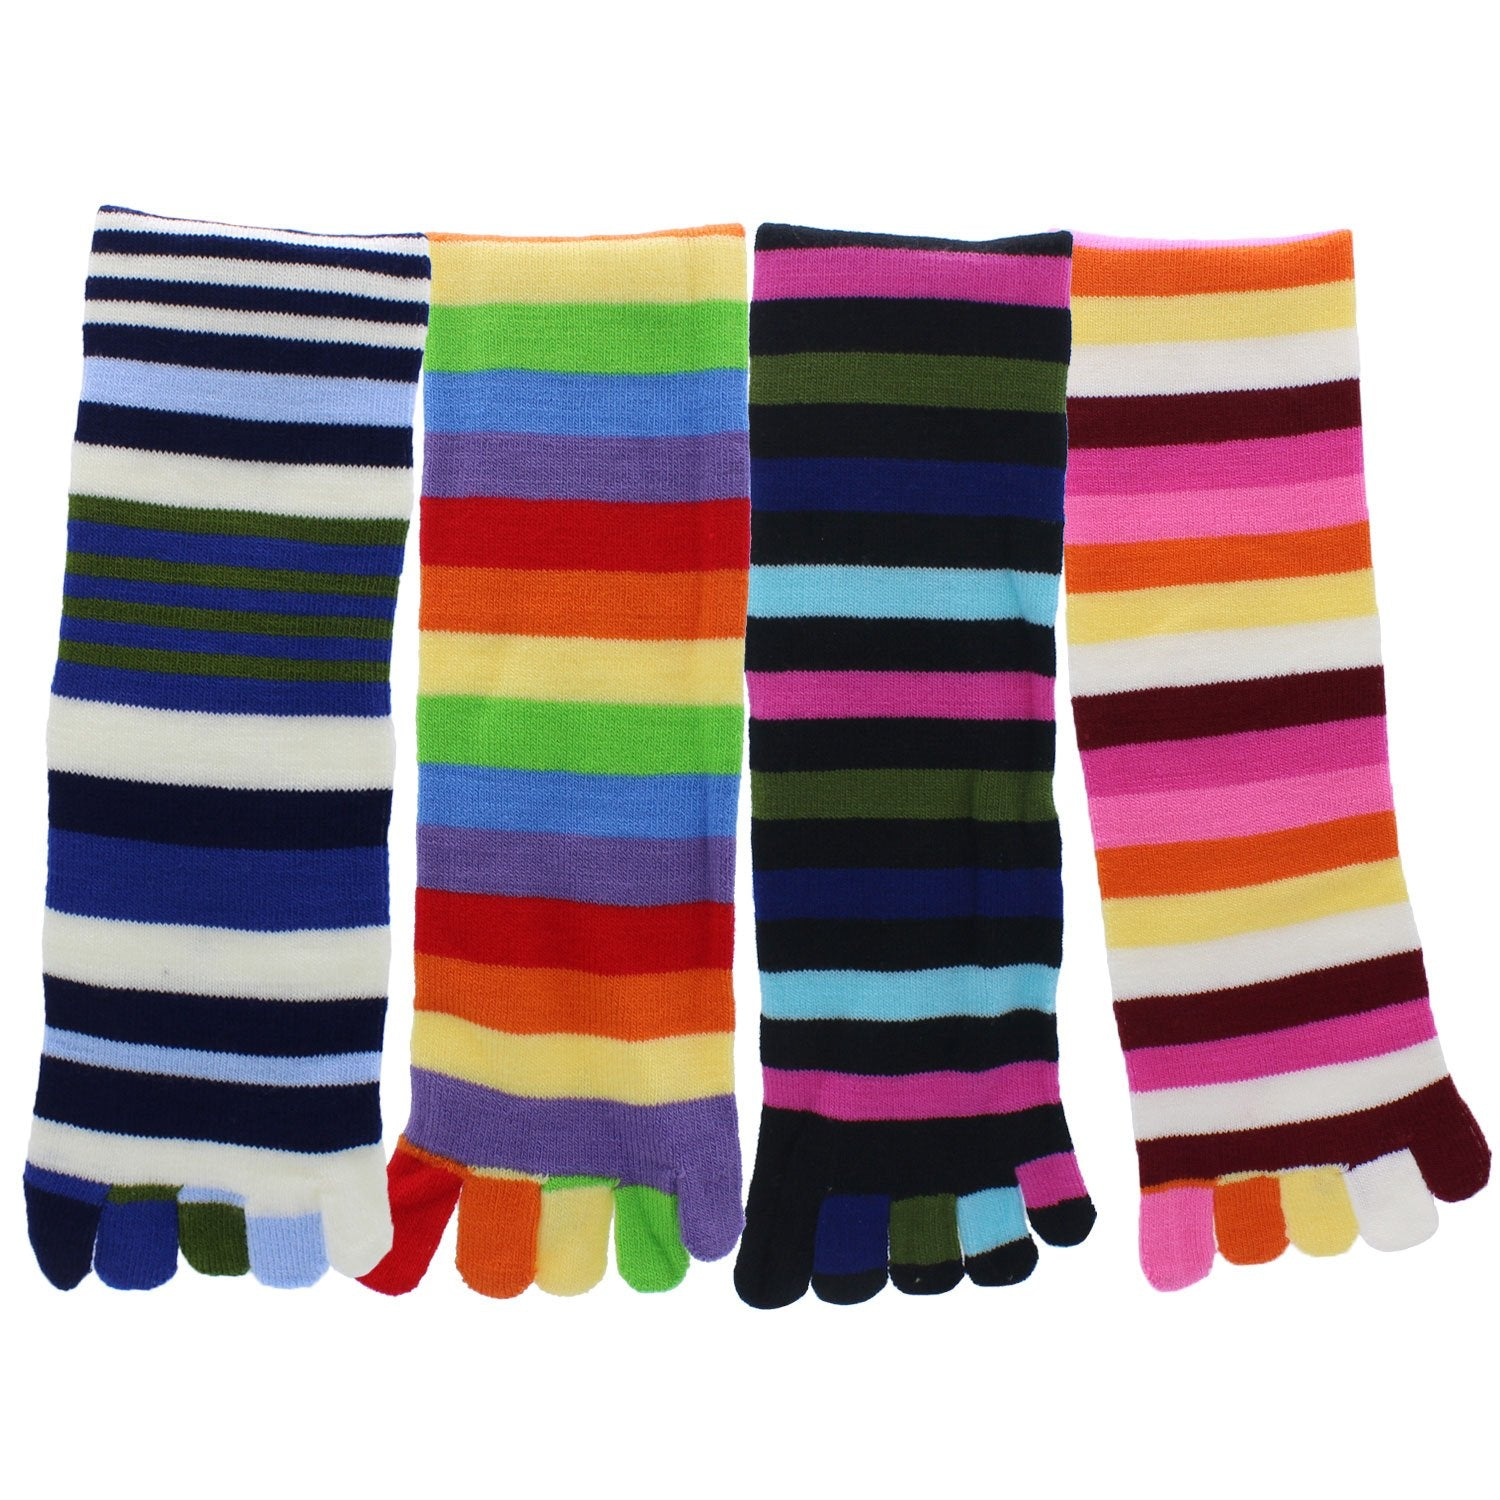 Toe Socks 4-Pack Multicolor Striped - Pack5